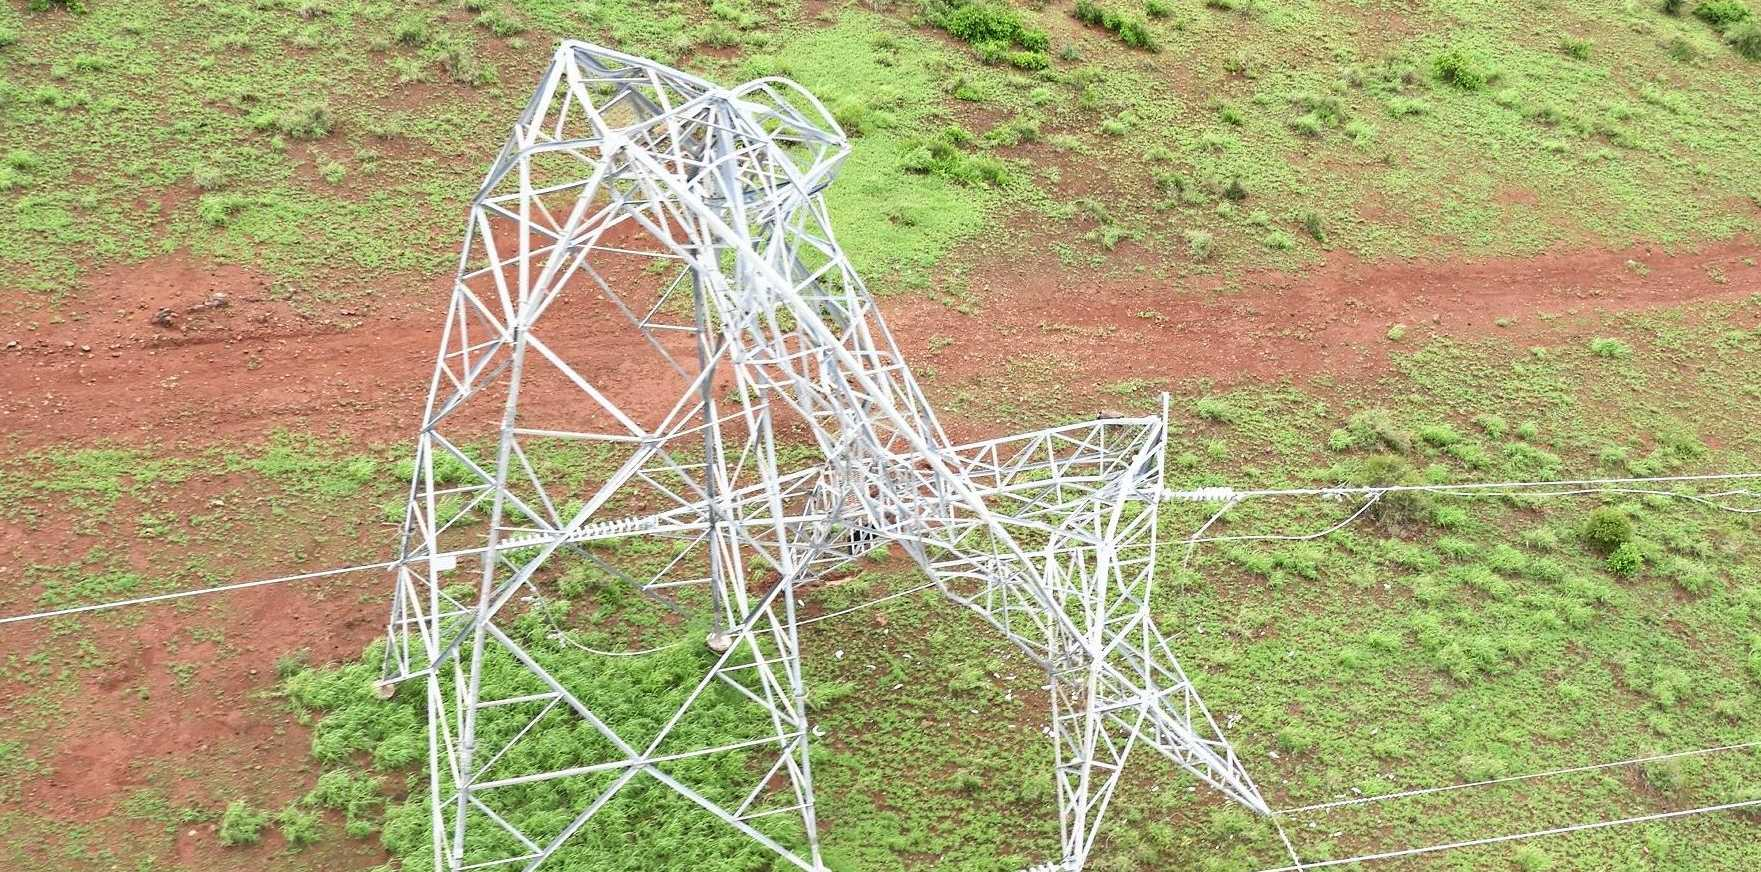 Ten transmission towers in central Queensland have been severely damaged in the recent flooding.